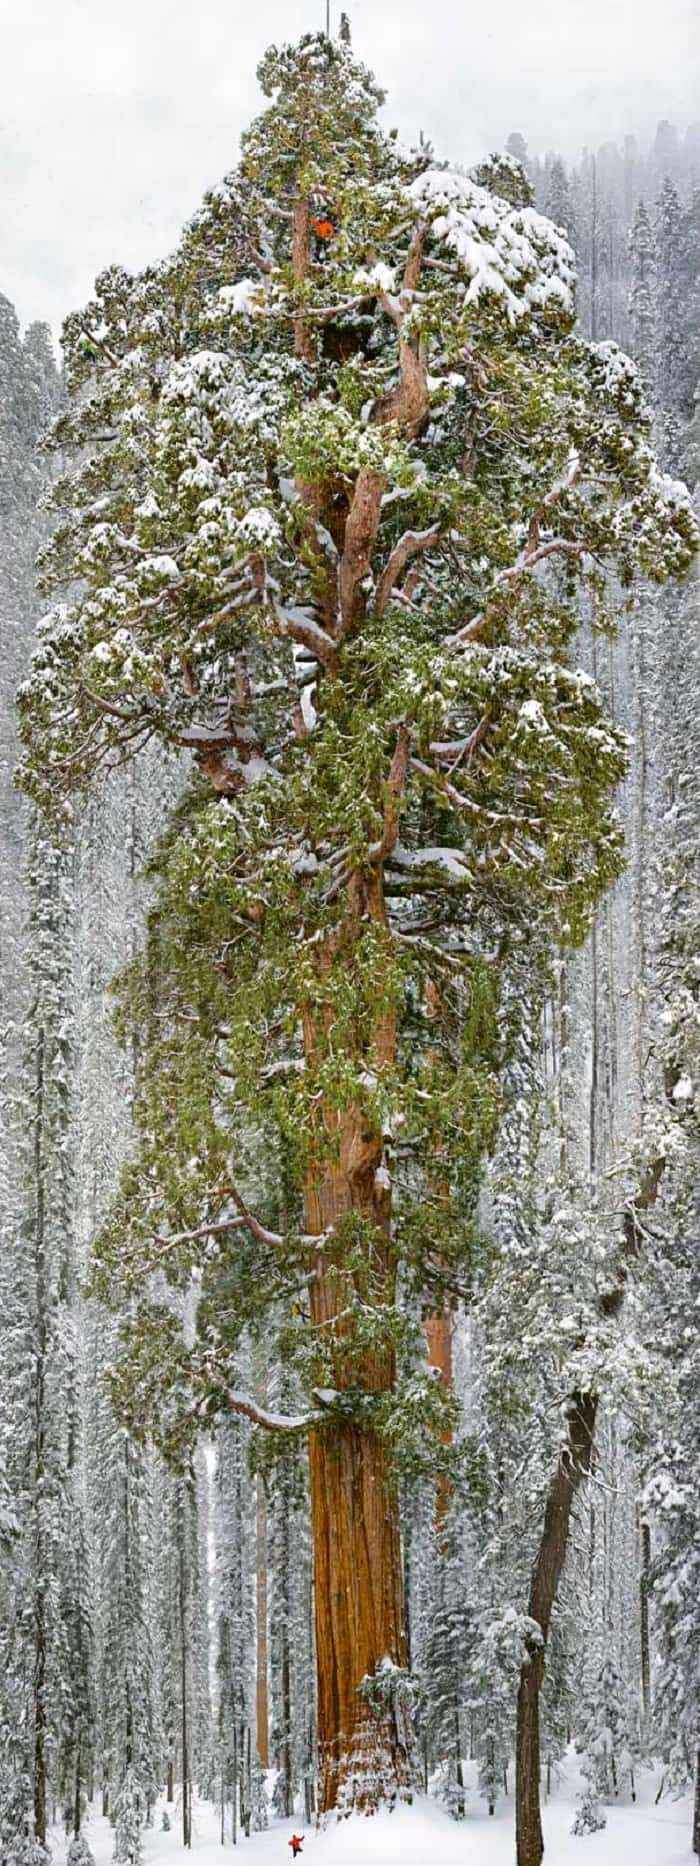 man at the top of very large seqoia tree in snowy conditions